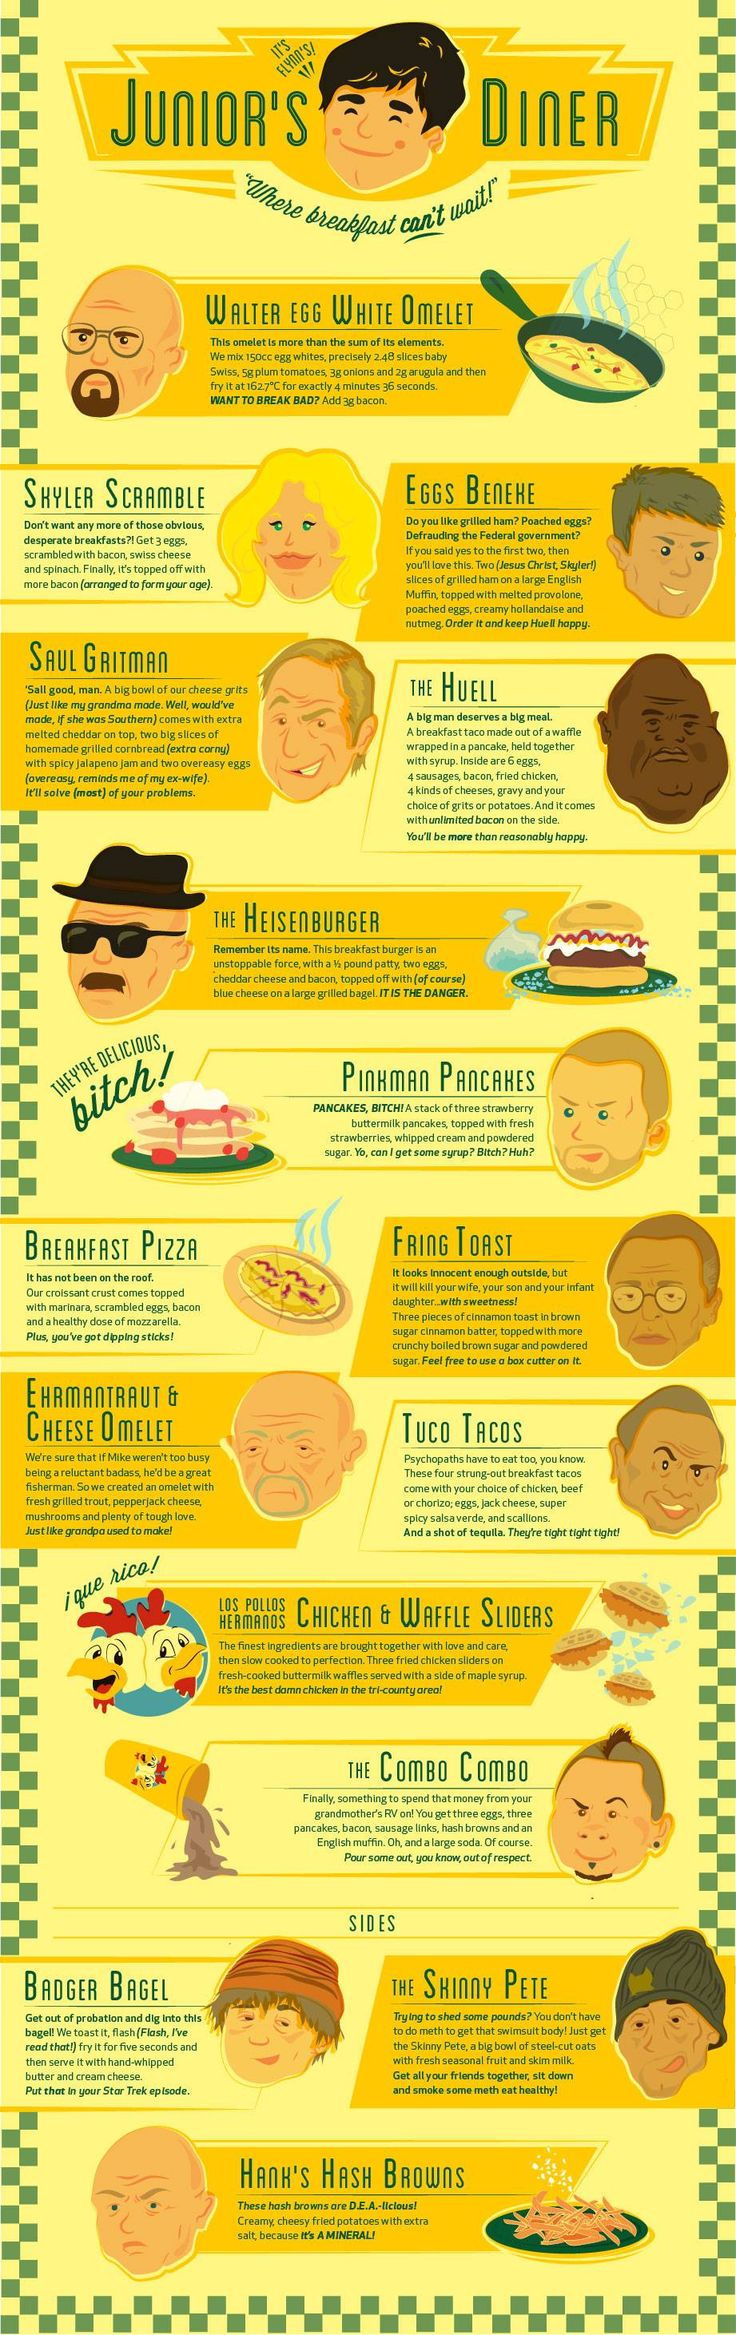 Breaking Bad Menu -  Eat your heart out Breaking Bad fans by Michelle Diaz & Alec Jankowski  #malta #socialmedia #breakingbad DO YOU WANT TO HAVE SOCIAL PROFILES LIKE ME www.ICanDoThings.com